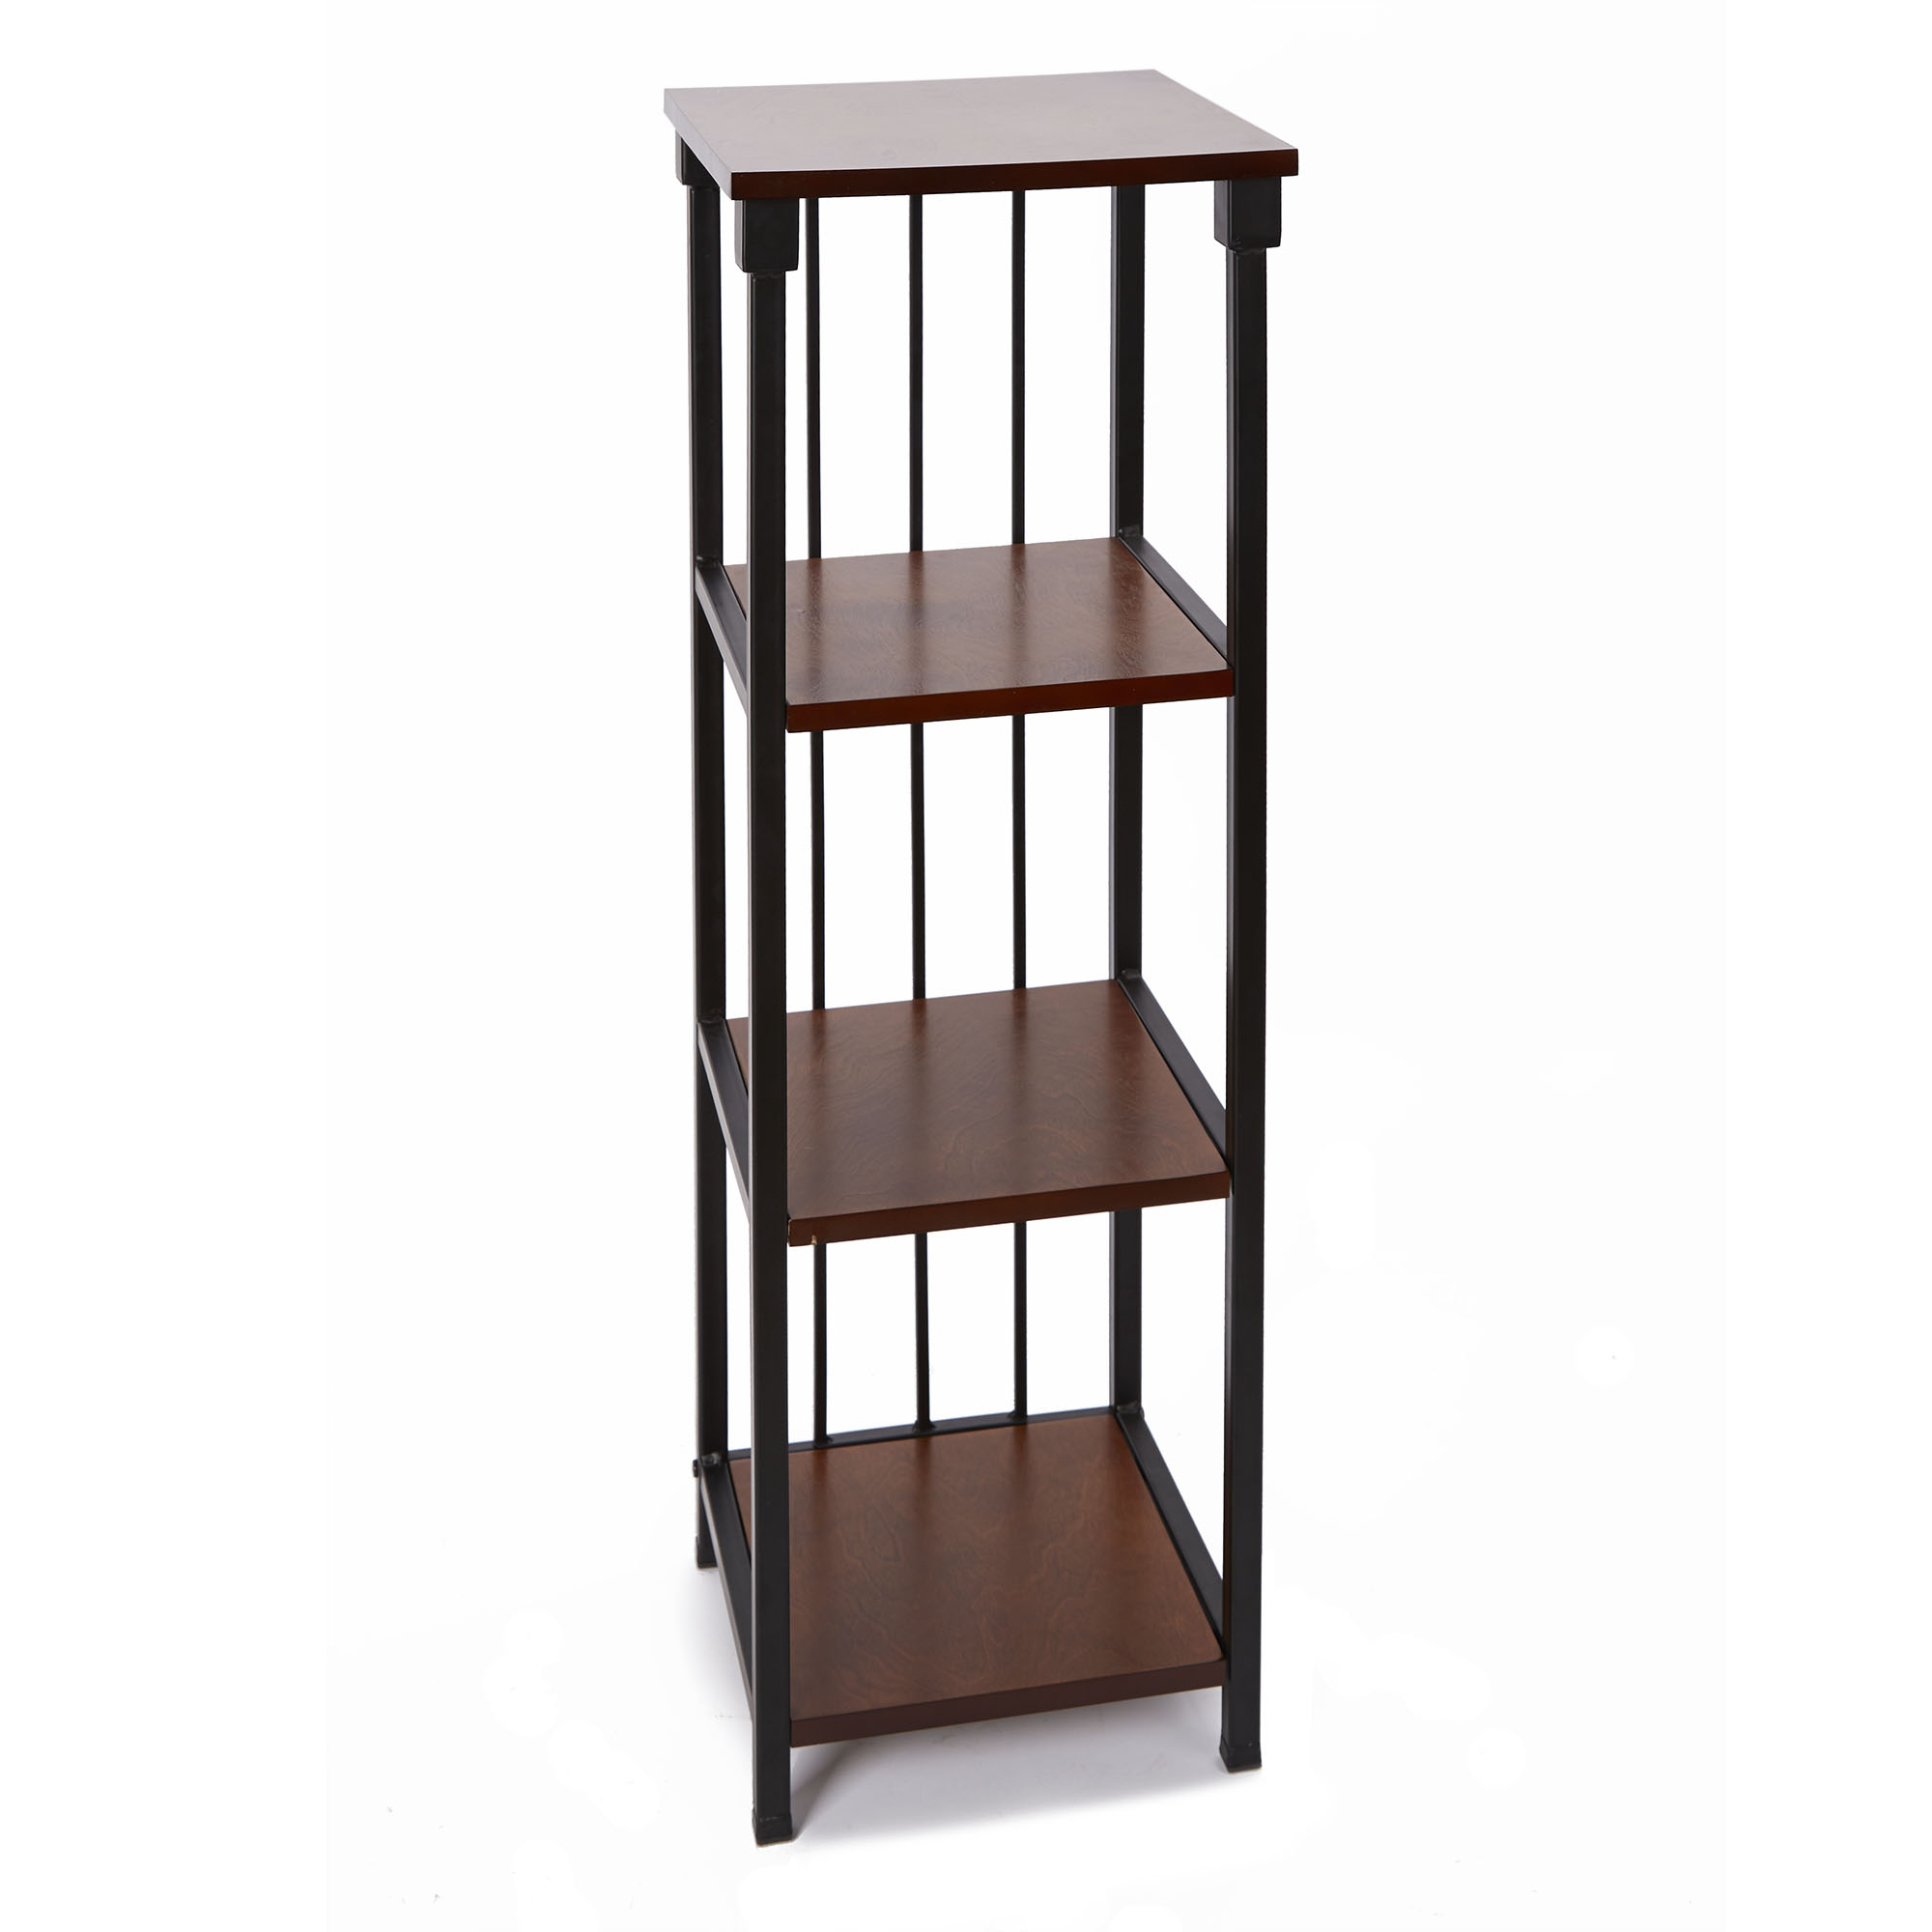 Mixed Material Bathroom Collection 4-Tier Floor Shelf, Oil Rubbed Bronze